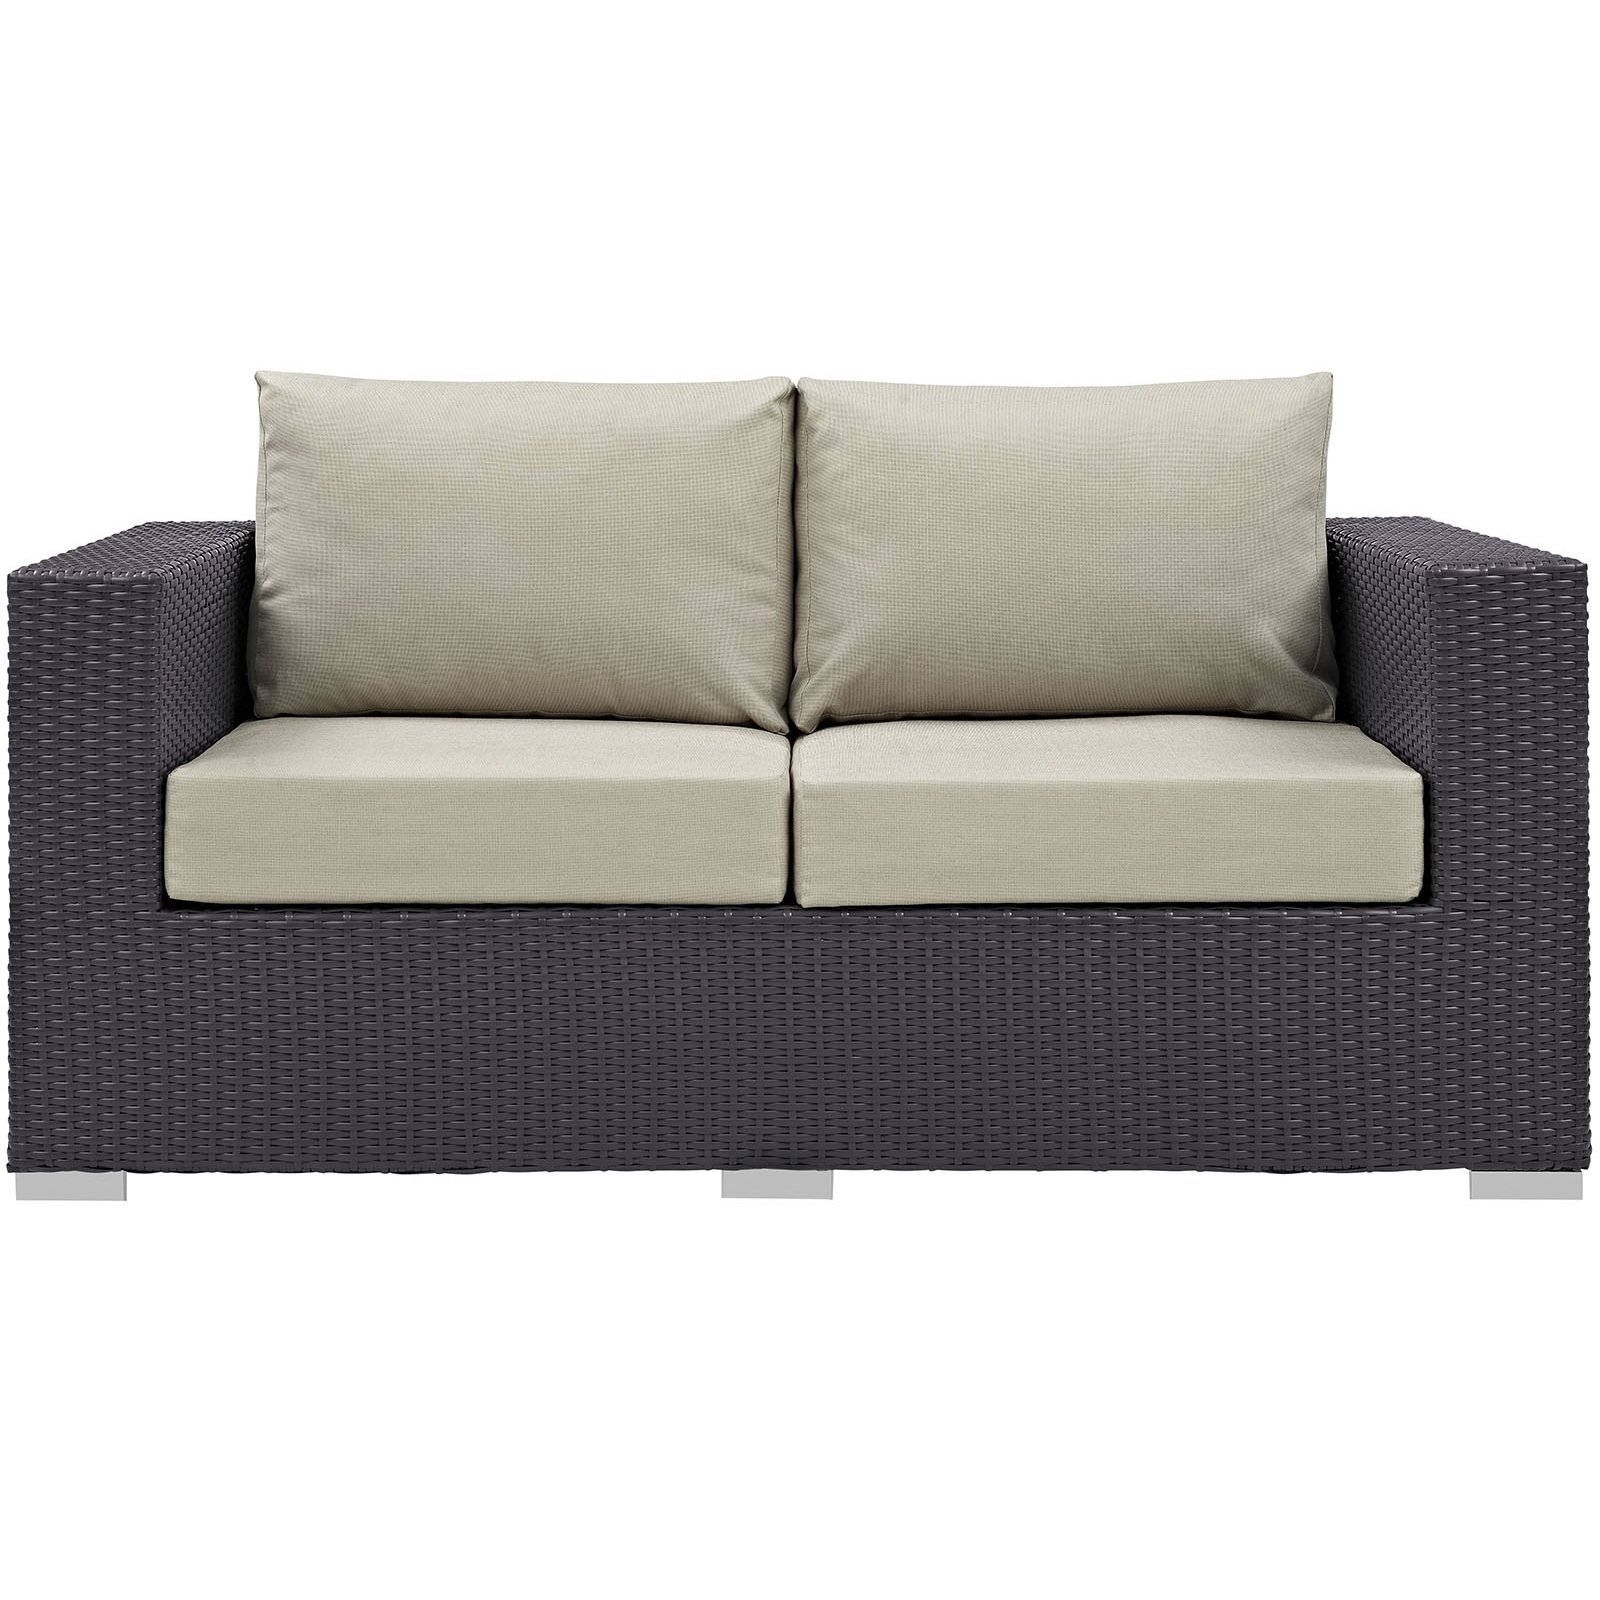 Most Popular Loggins Loveseats With Cushions Throughout Modway Convene Wicker Outdoor Loveseat White (View 17 of 20)